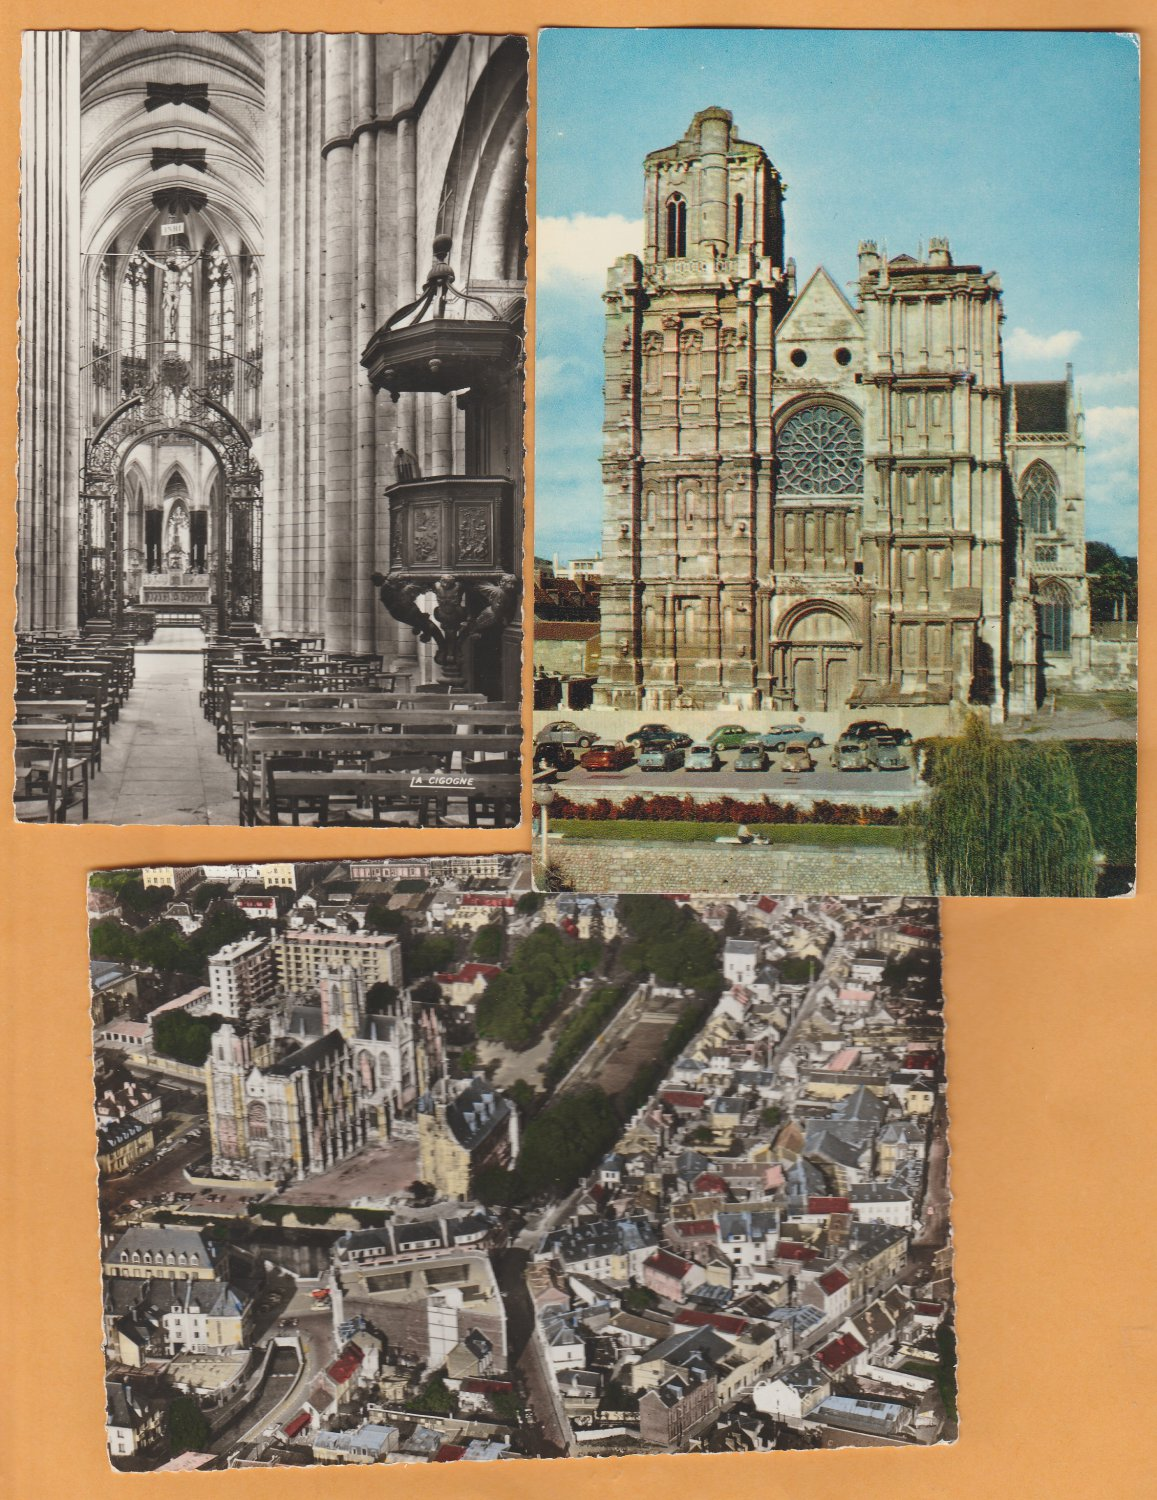 Evreux (Eure) France Postcards Lot of 3 Cathedrals Historic Churches